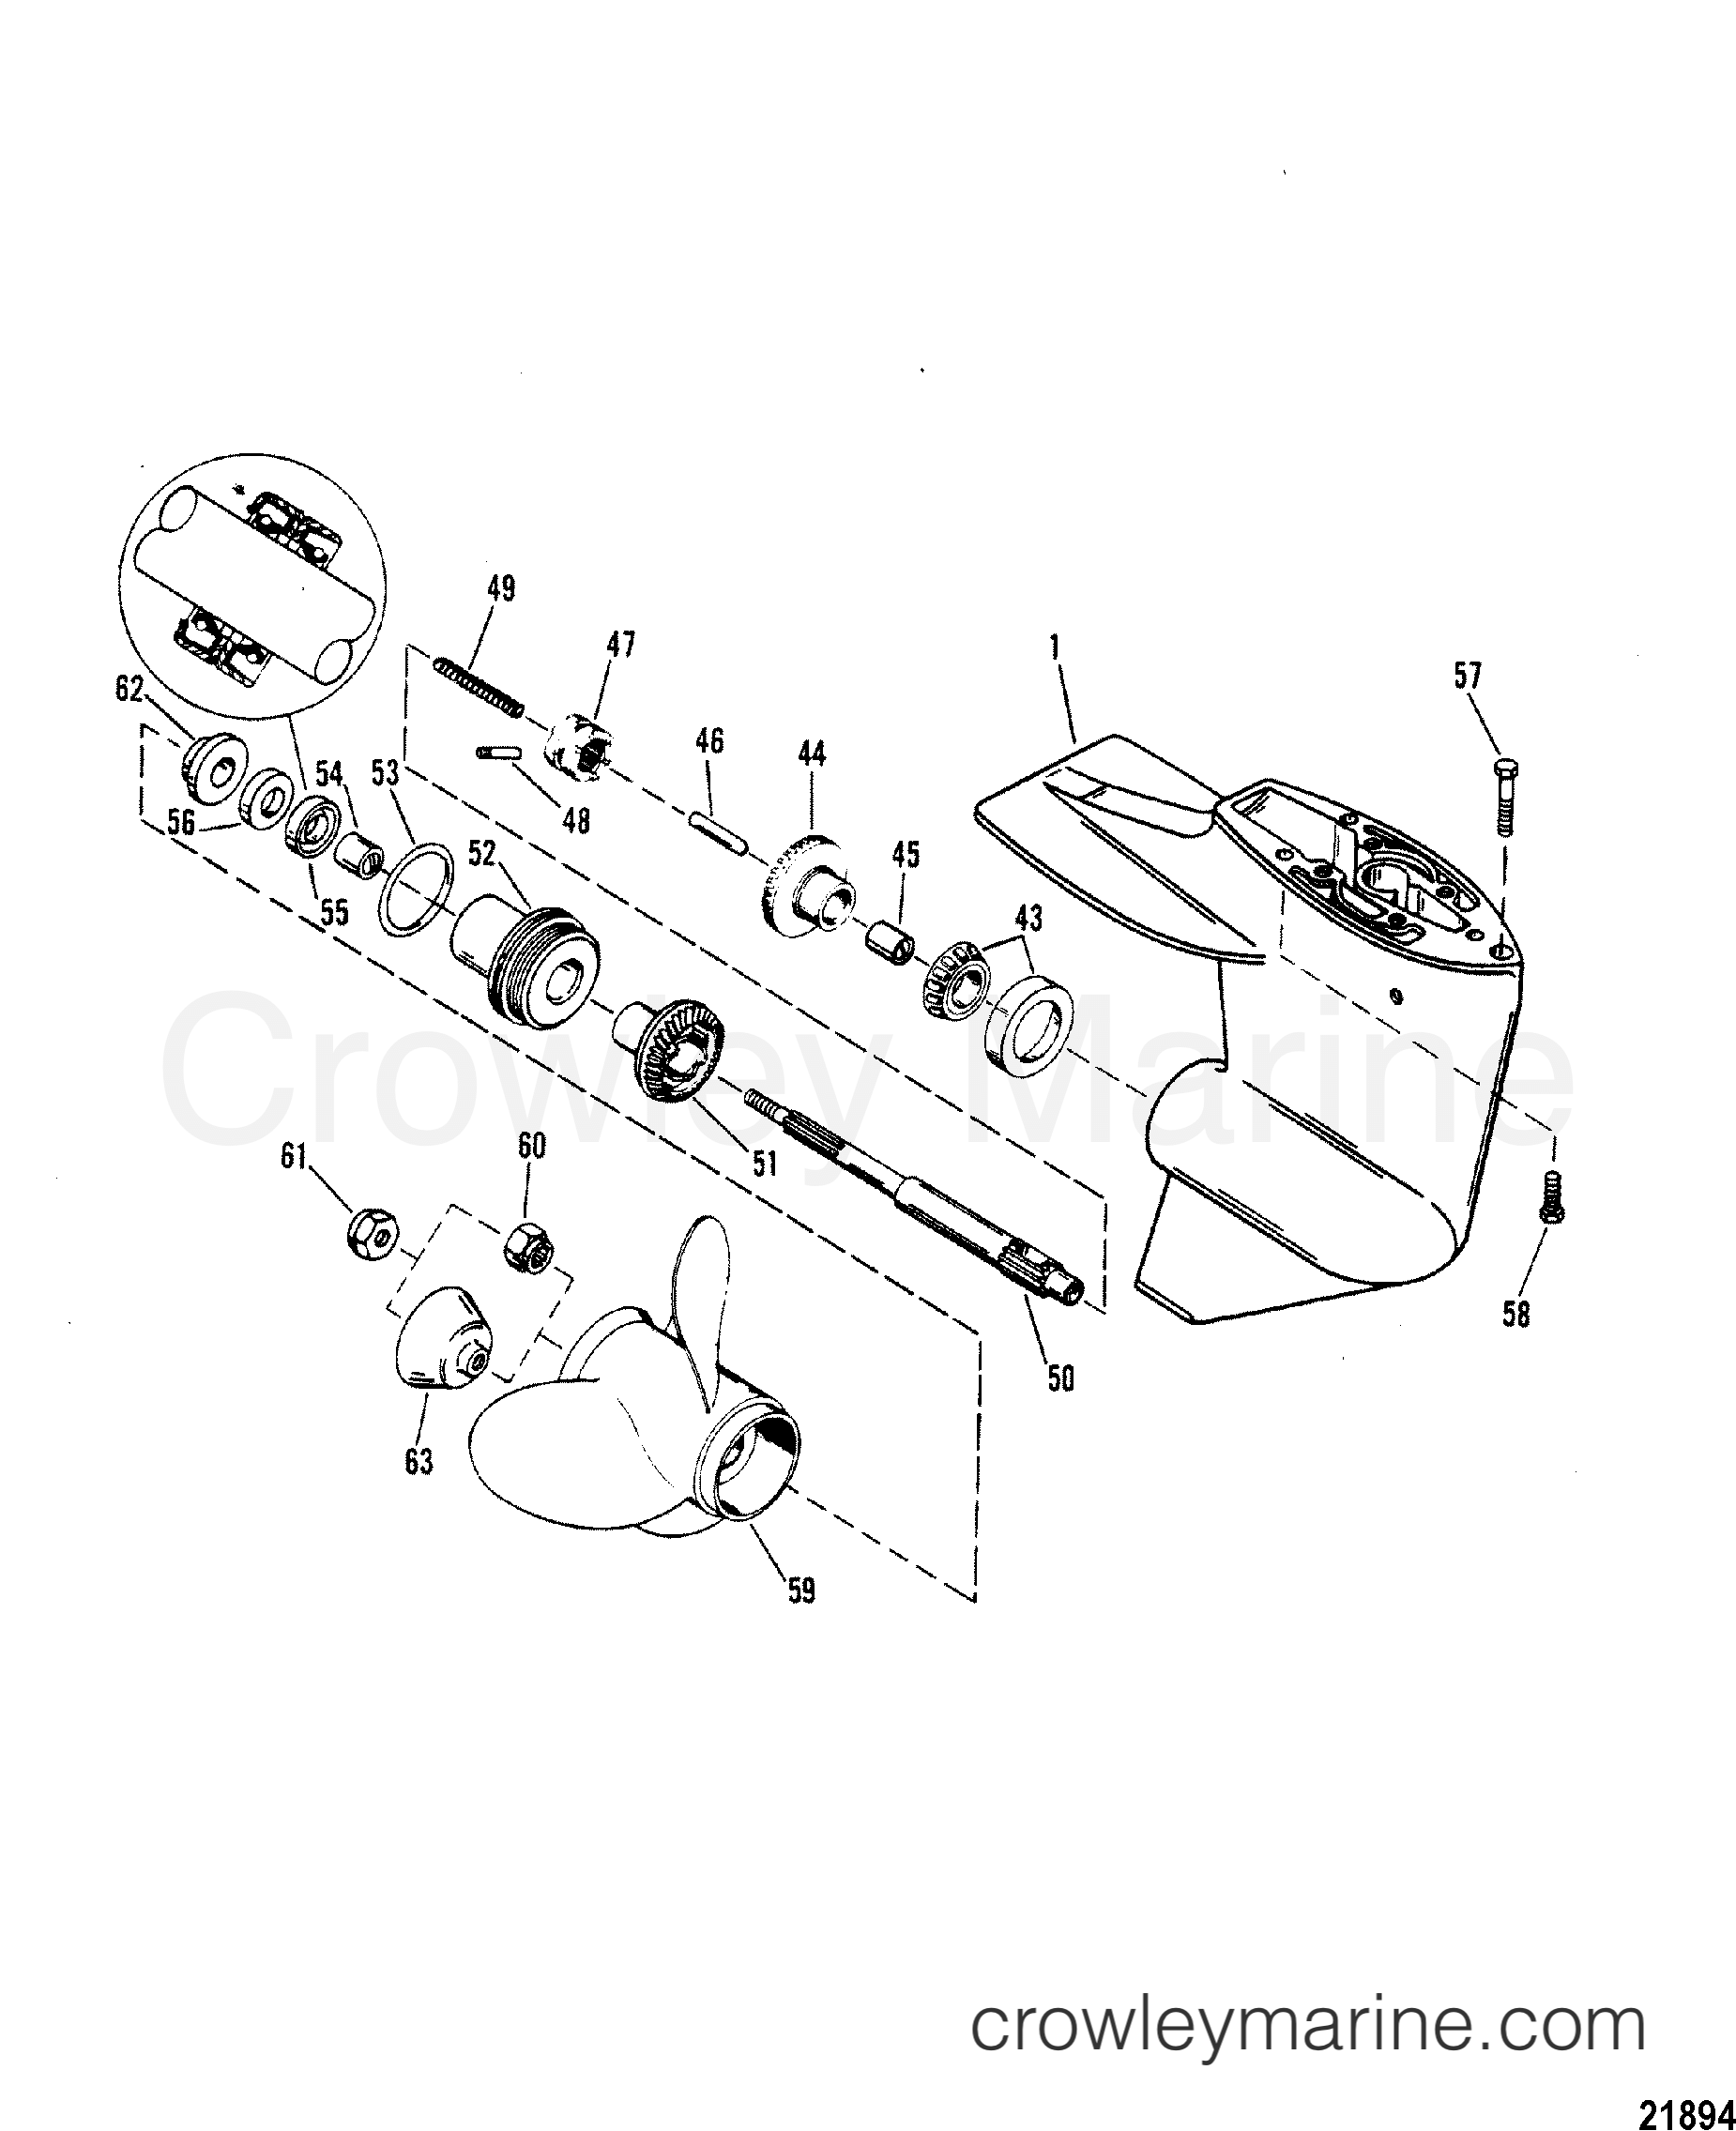 1993 Mariner Outboard 15 [MLH] - 7015211BD - GEAR HSG(PROPSHAFT-DESIGN II-REFER TO DRIVESHAFT DRAWING) section